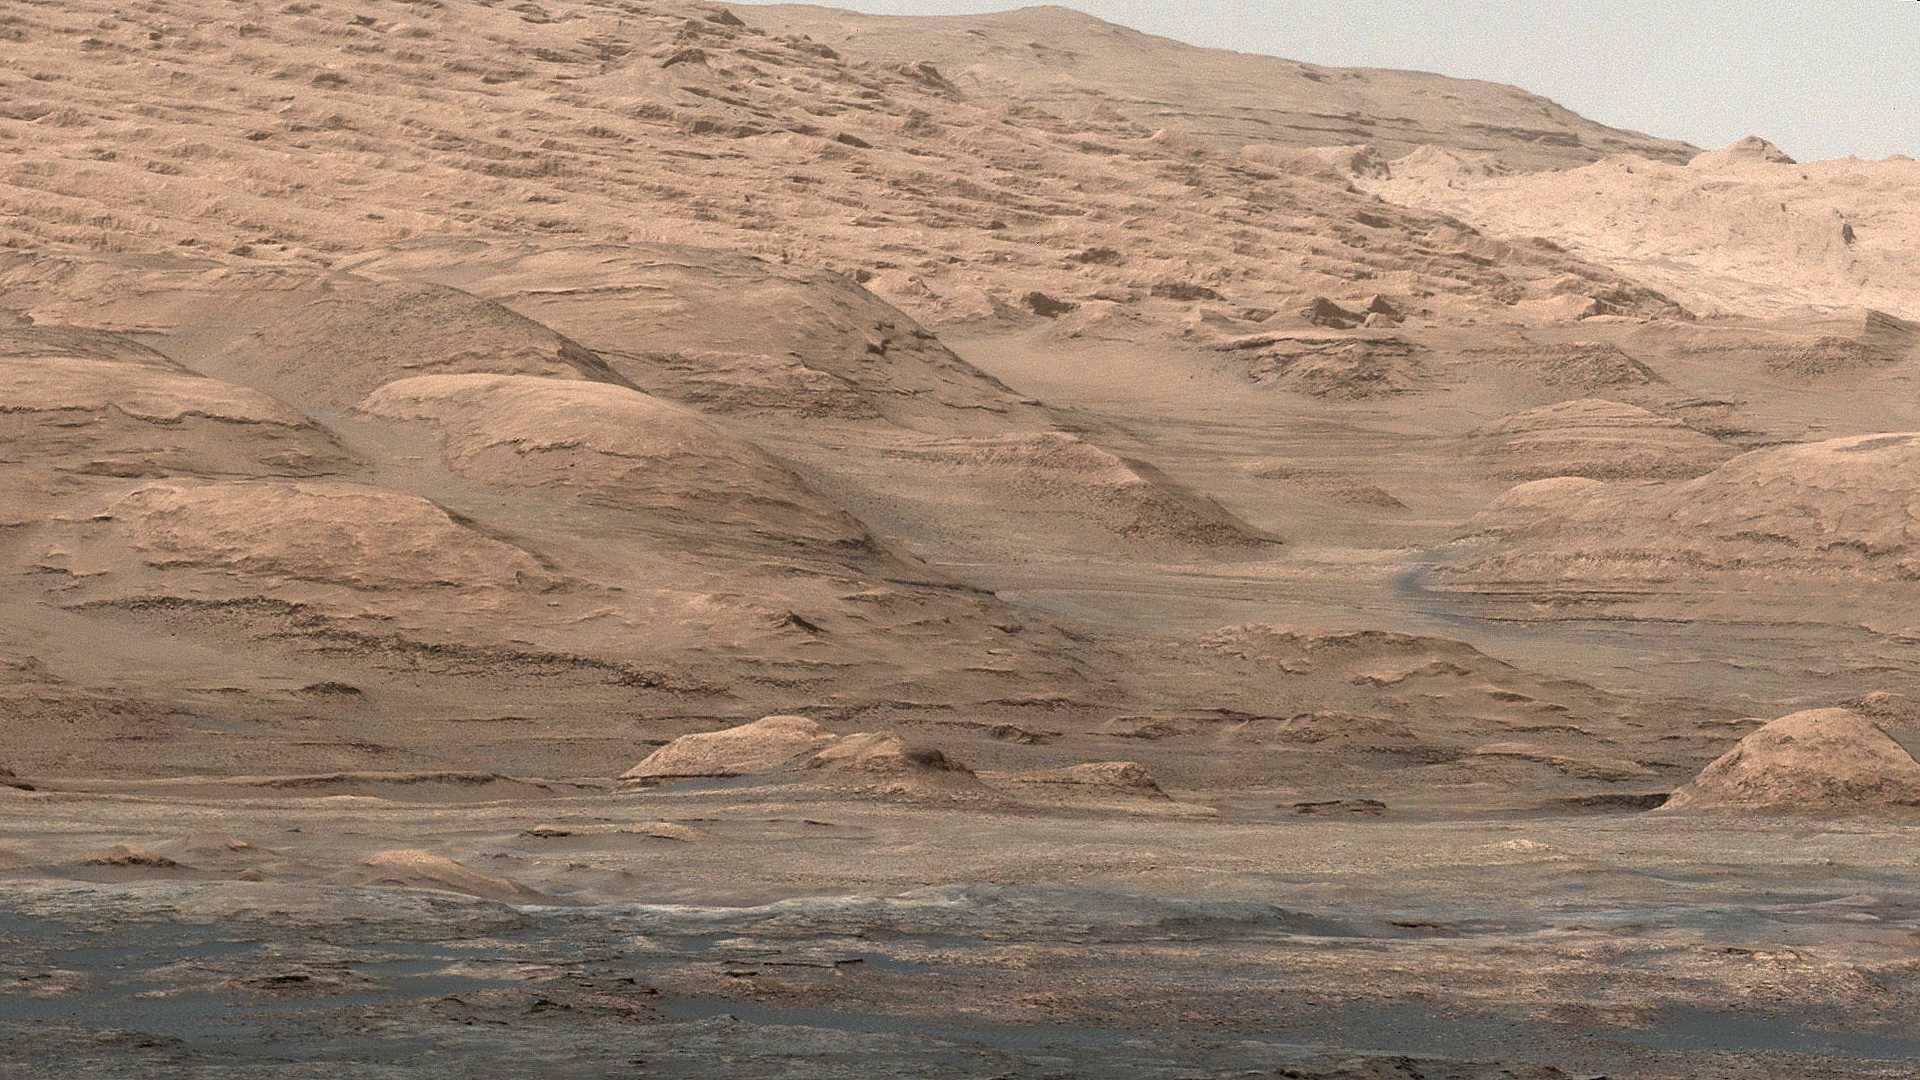 Pilcrow view of Mars